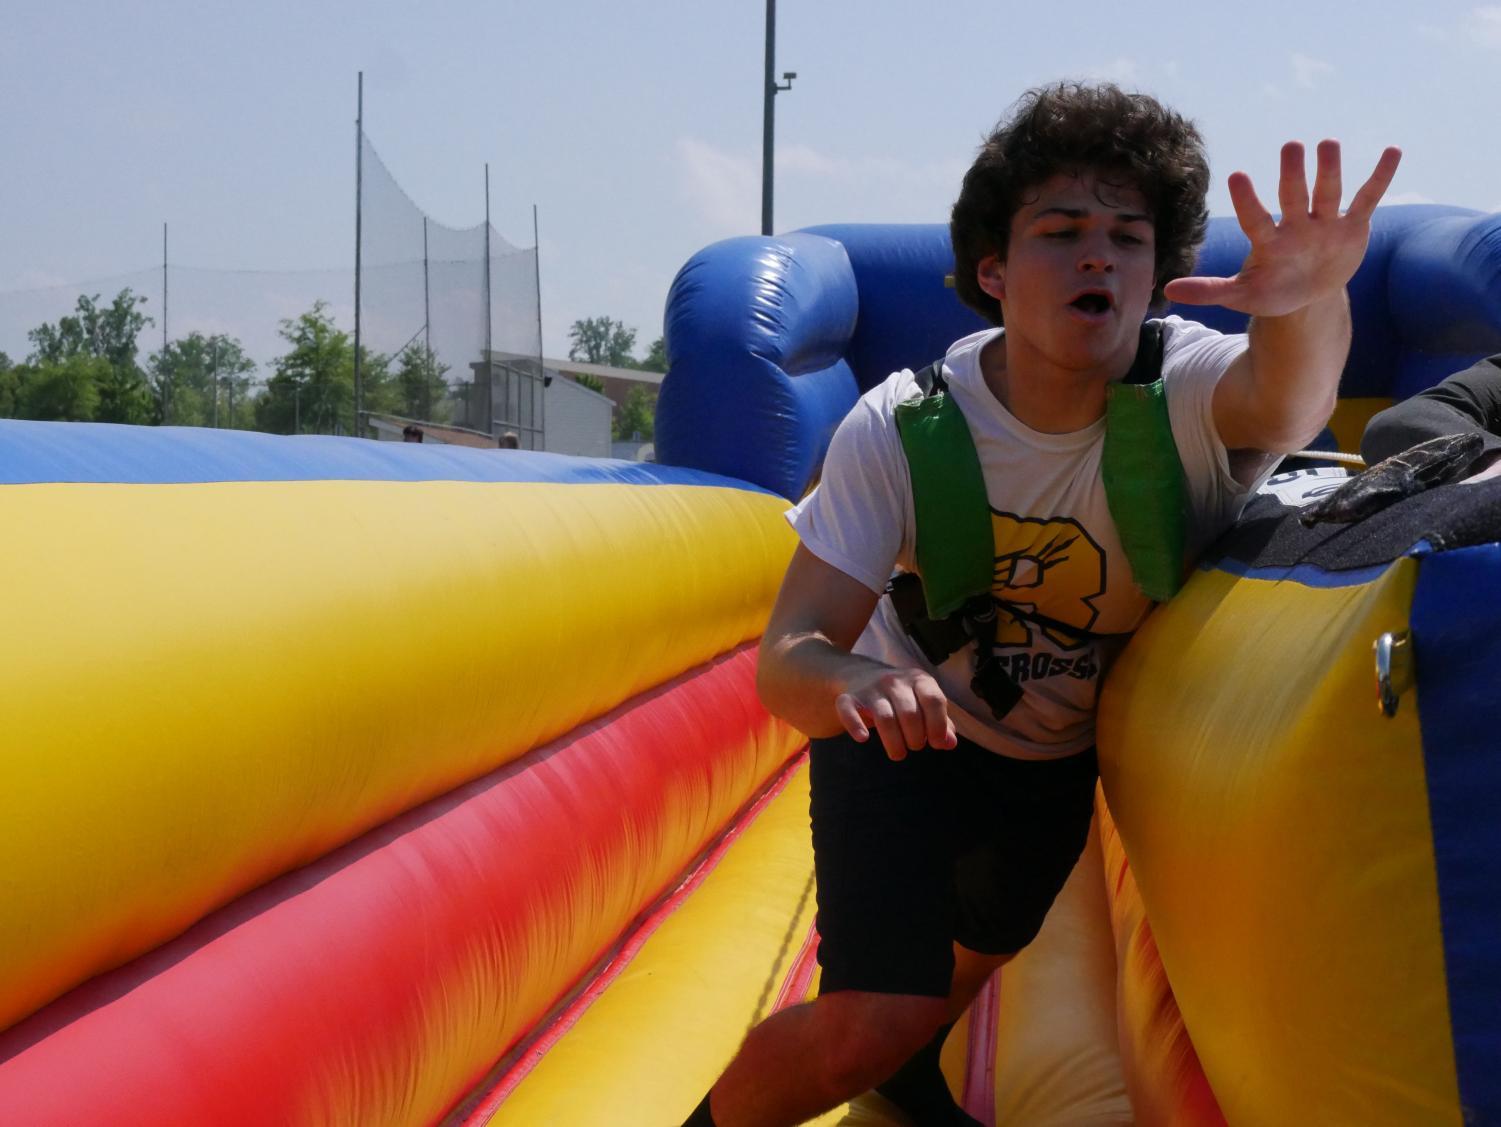 Senior Ethan Vernatter fights to make it to the finish line in the bungee race at the Decision Day party on May 1. Photo courtesy of David Small.